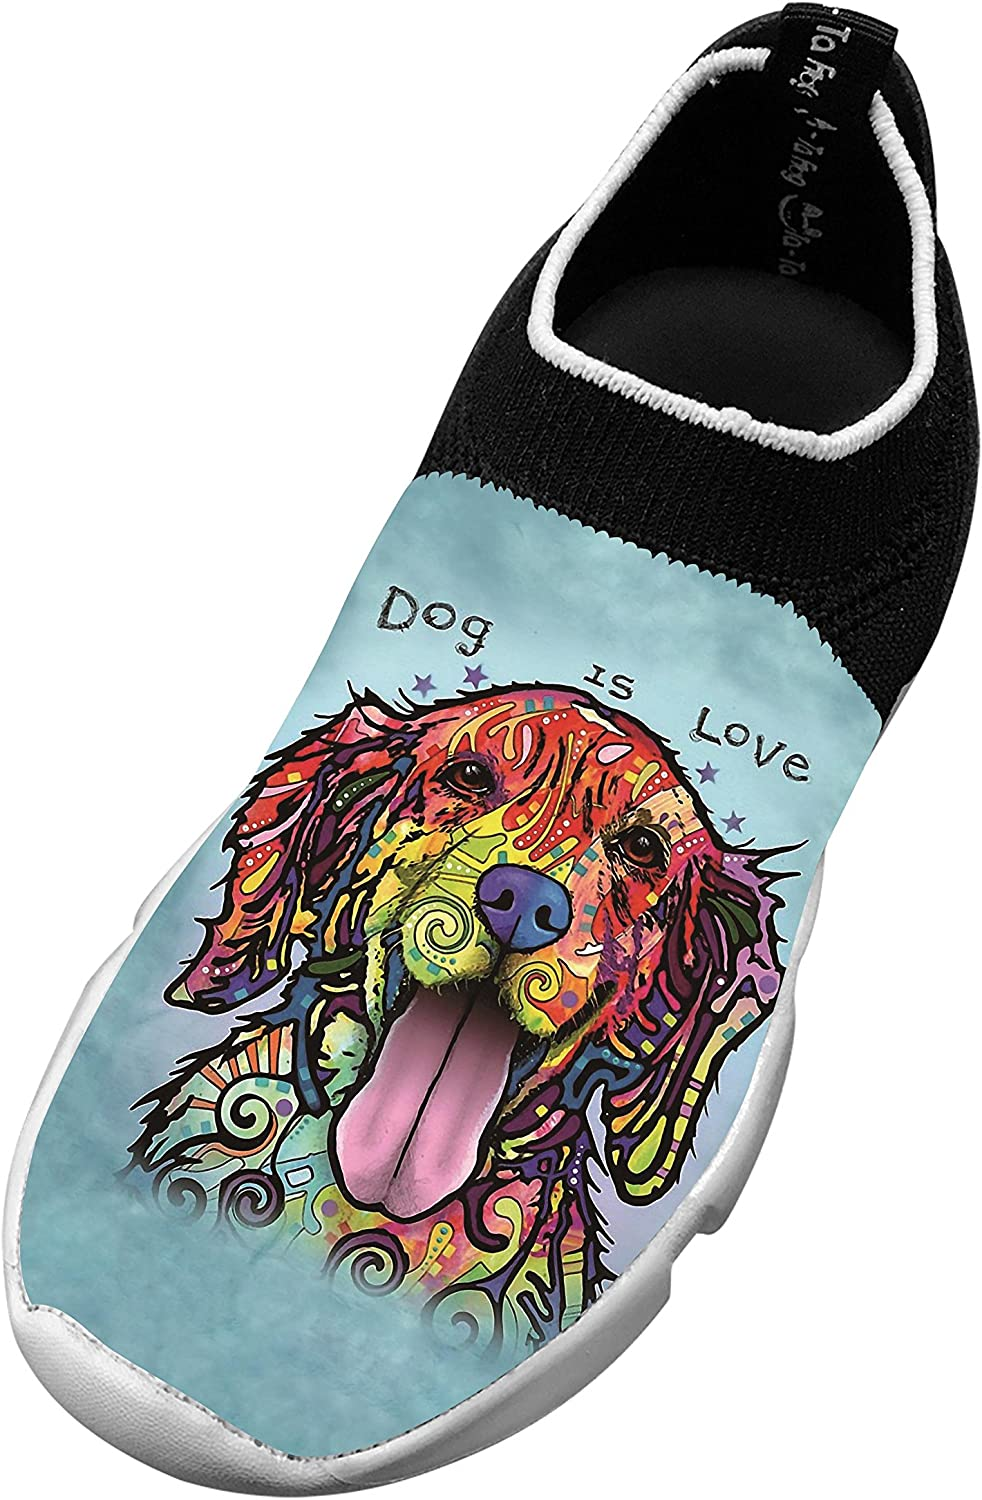 New Fashion Flywire Knitting Jogging Shoes 3D Design With Dog Is Love For Boy Girl